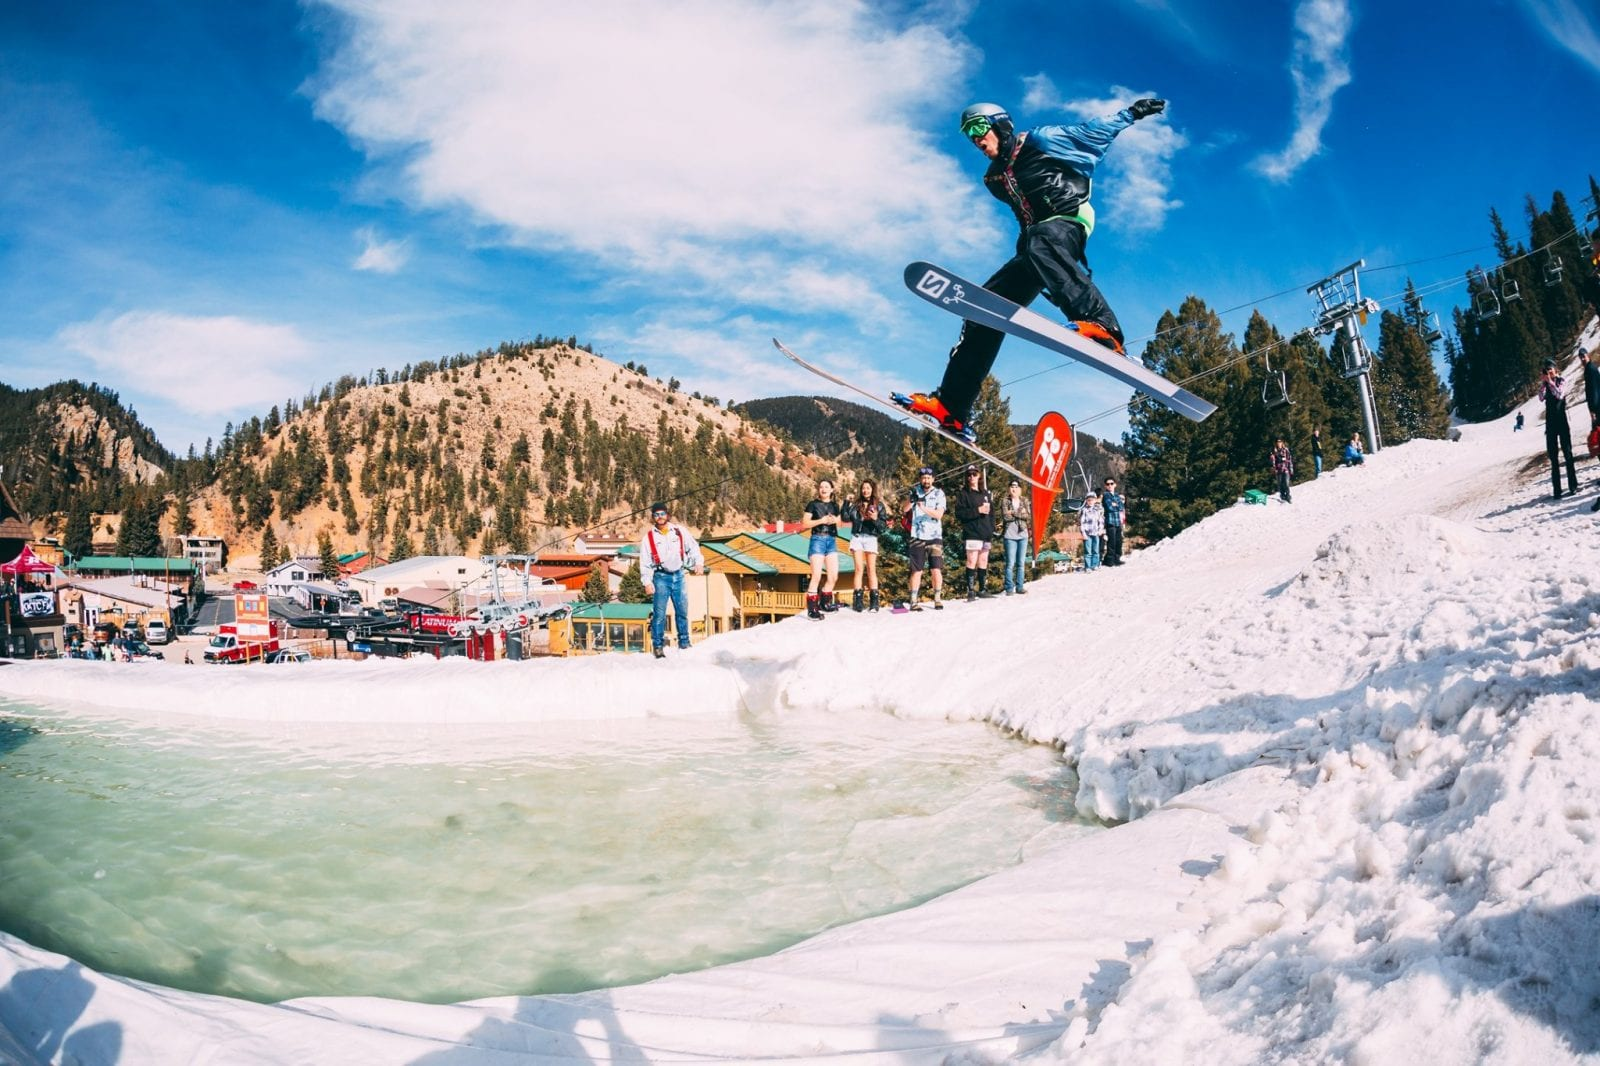 Image of a skier jumping a water pit at Red River Ski & Summer Area in New Mexico